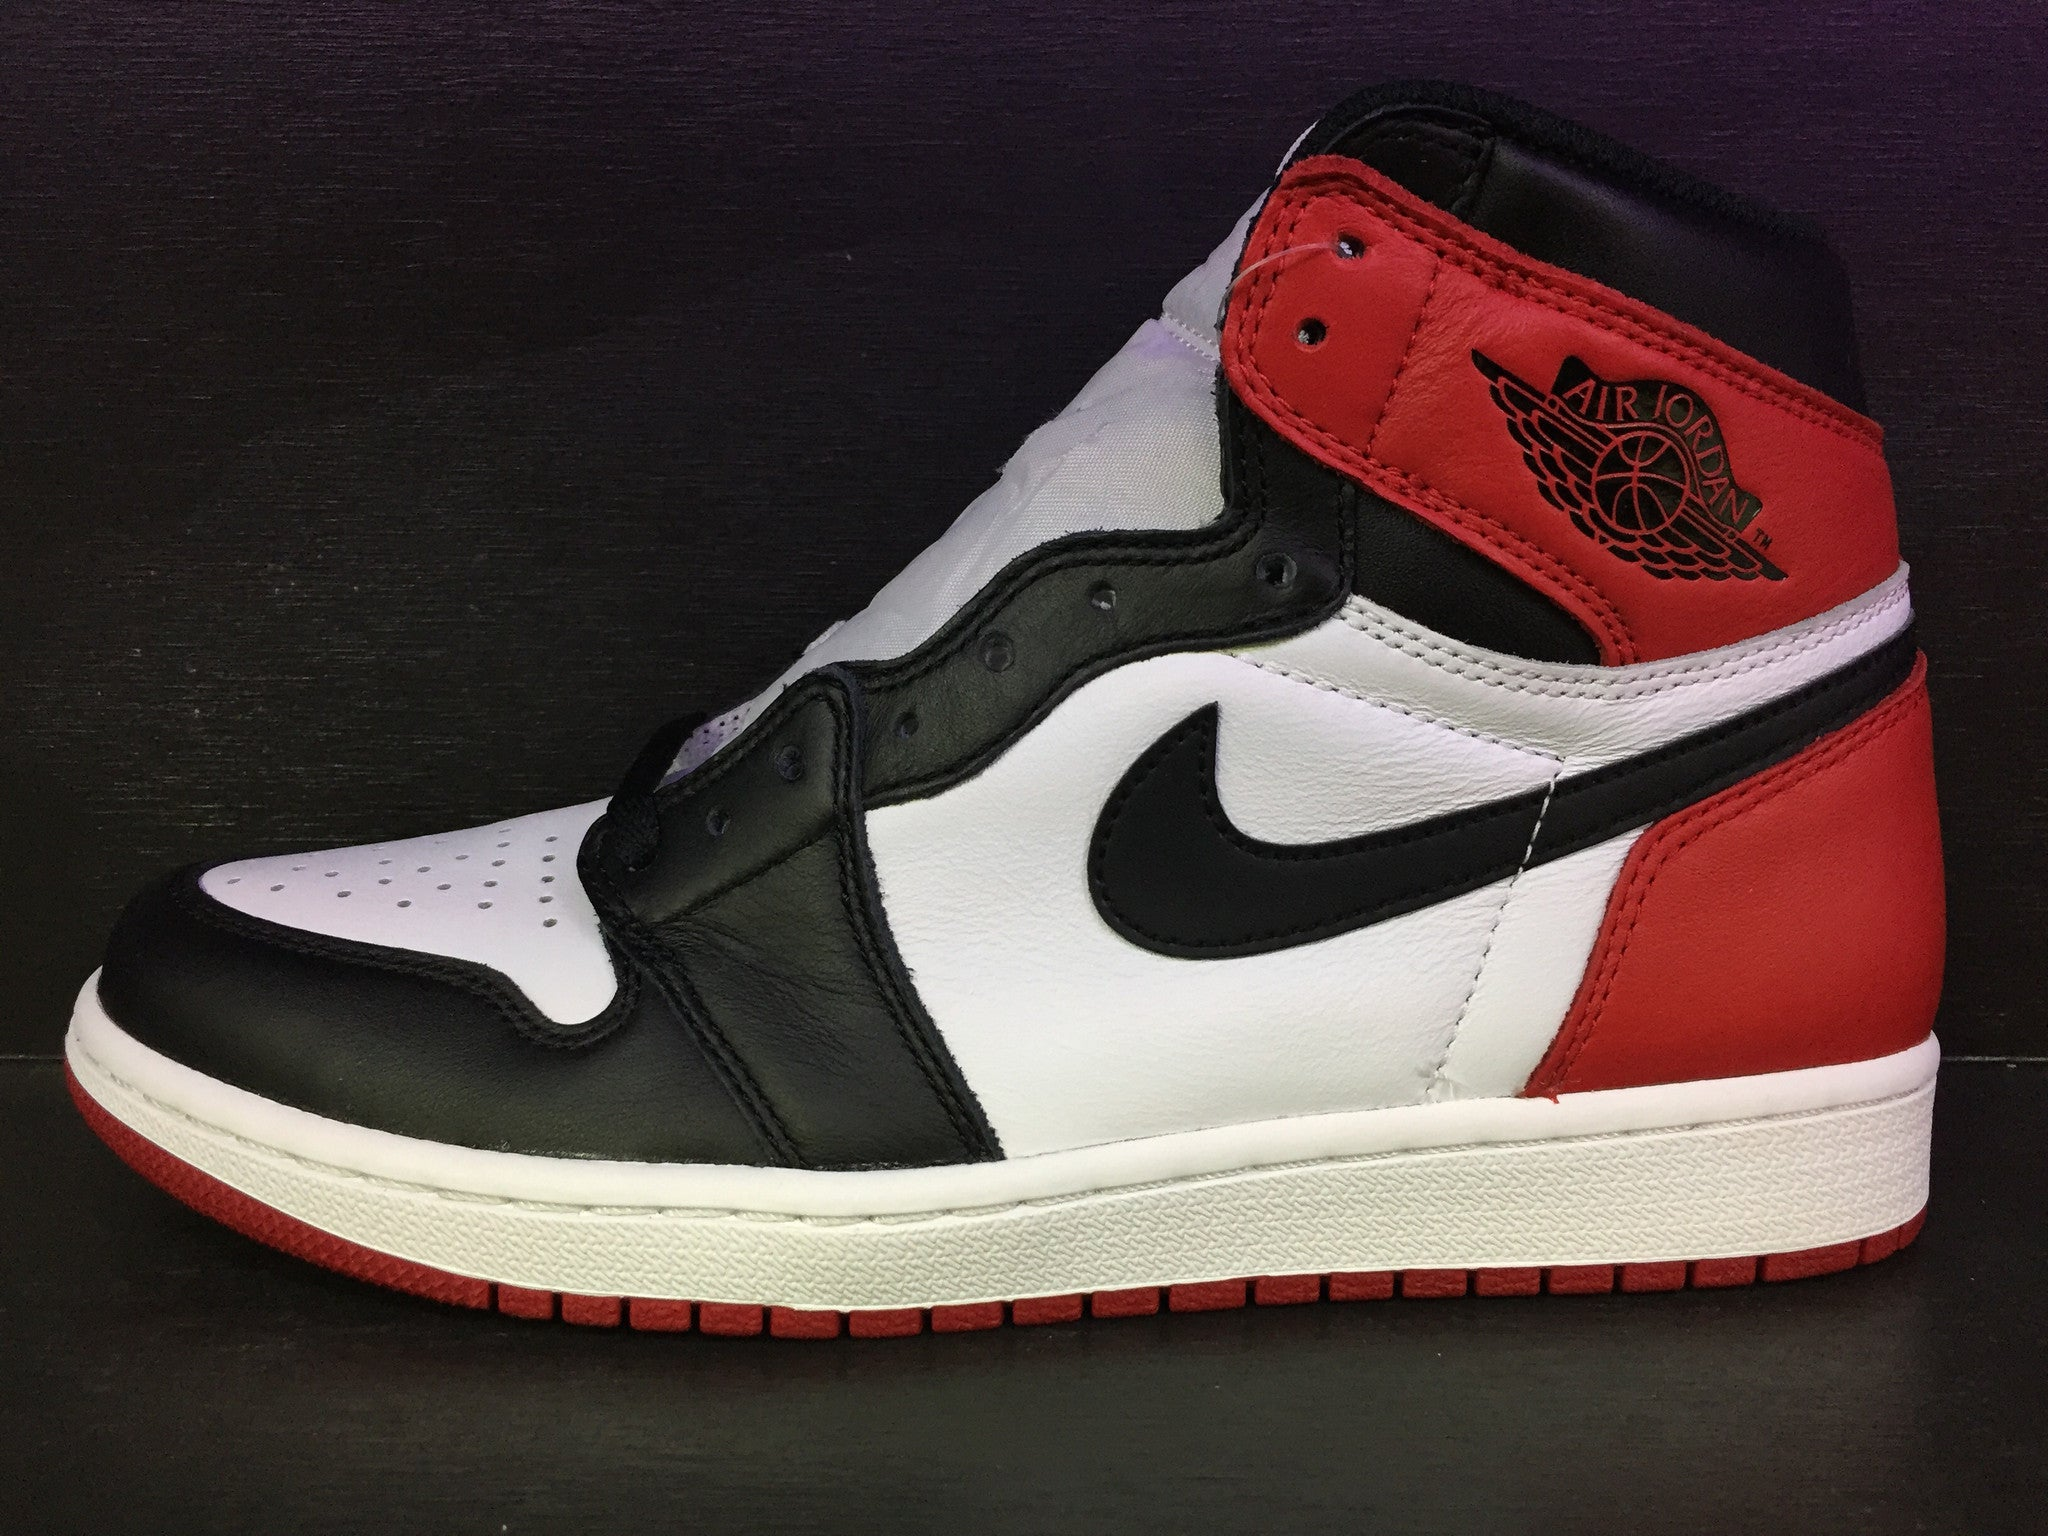 Air Jordan 1 Retro High OG 'Black Toe' 2016